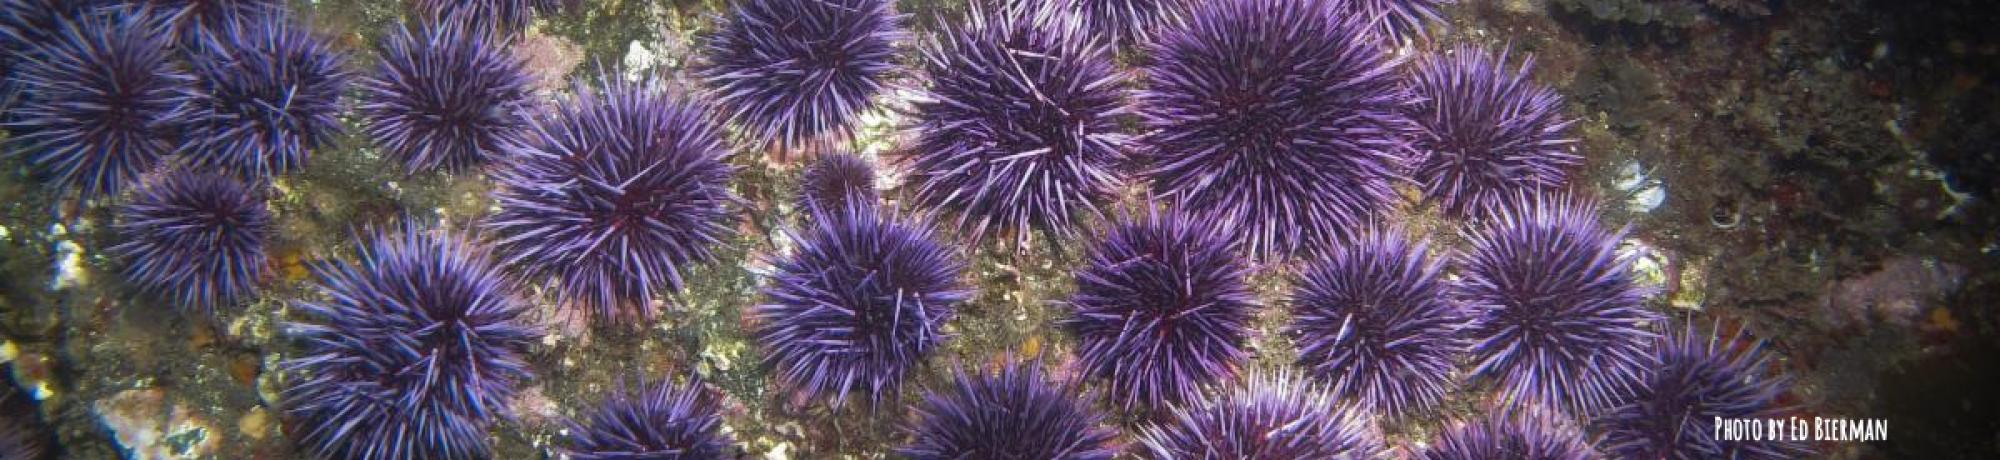 Native CA purple sea urchins on rock